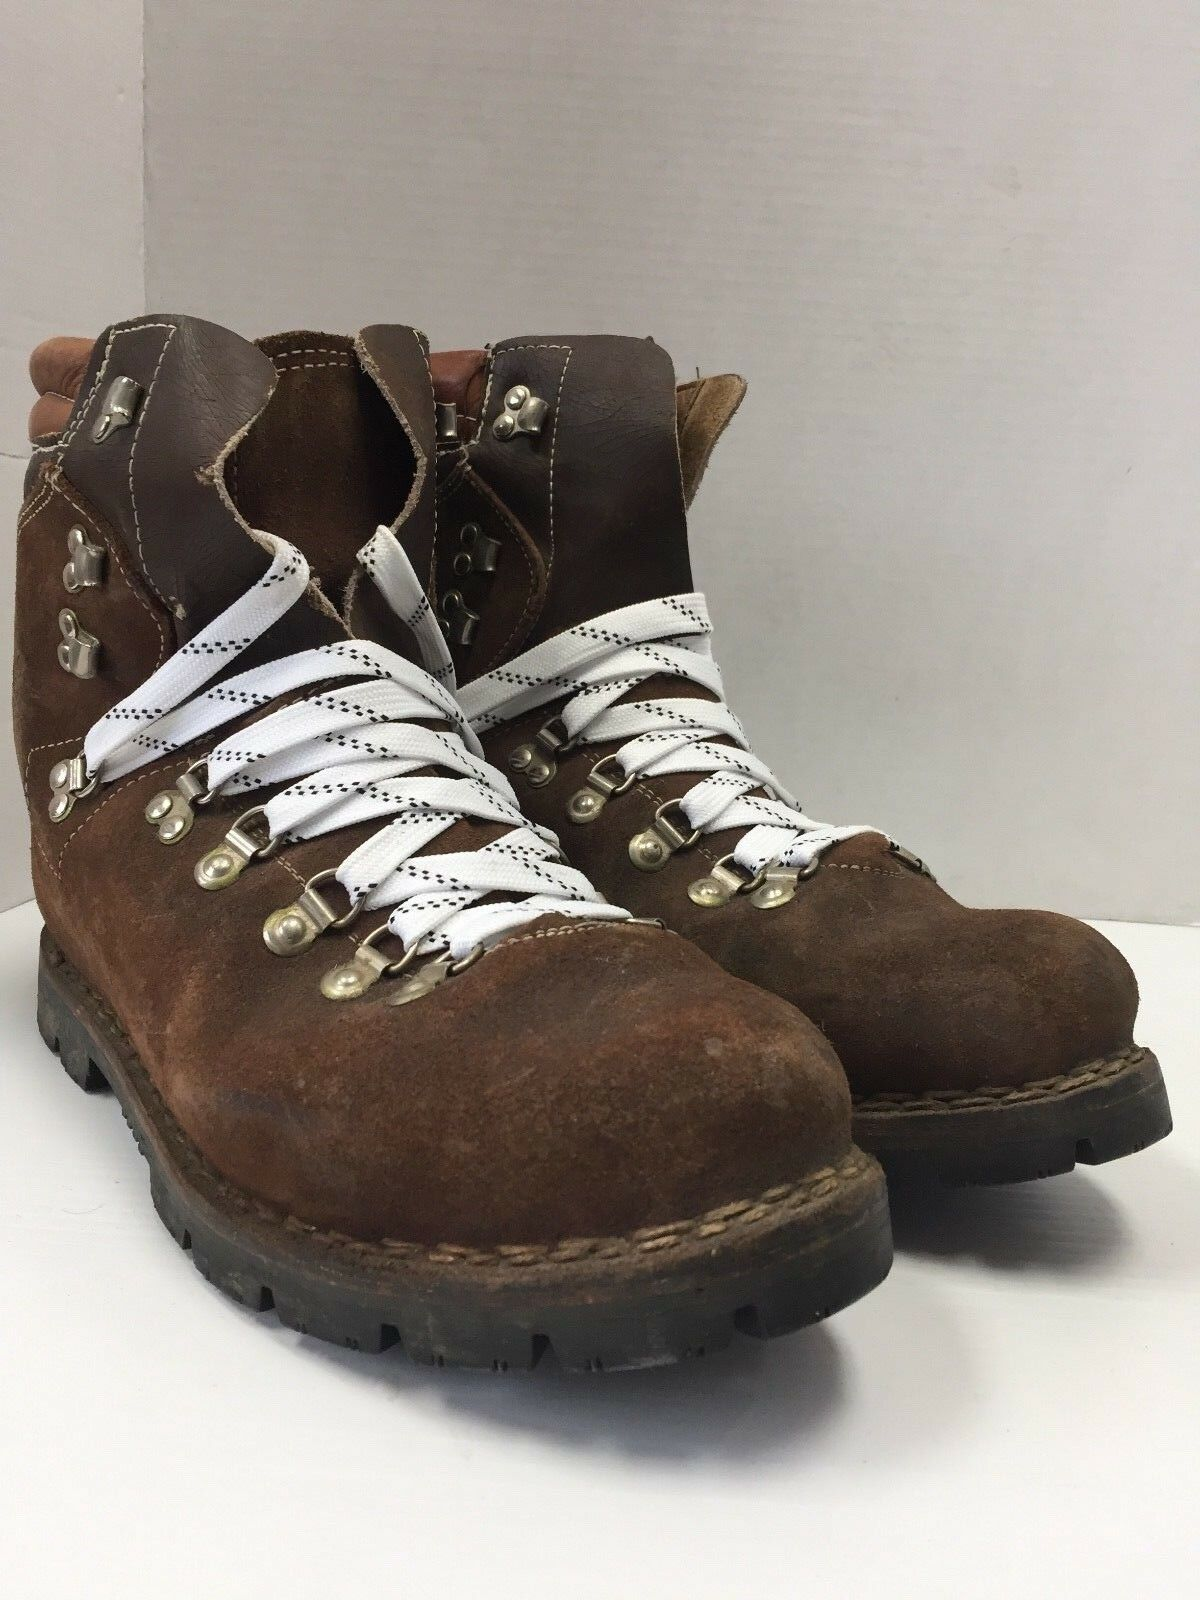 Vintage  colorado Brown Leather Lace up Mountaineer Traill Boss hiker boots 12 47  up to 60% off